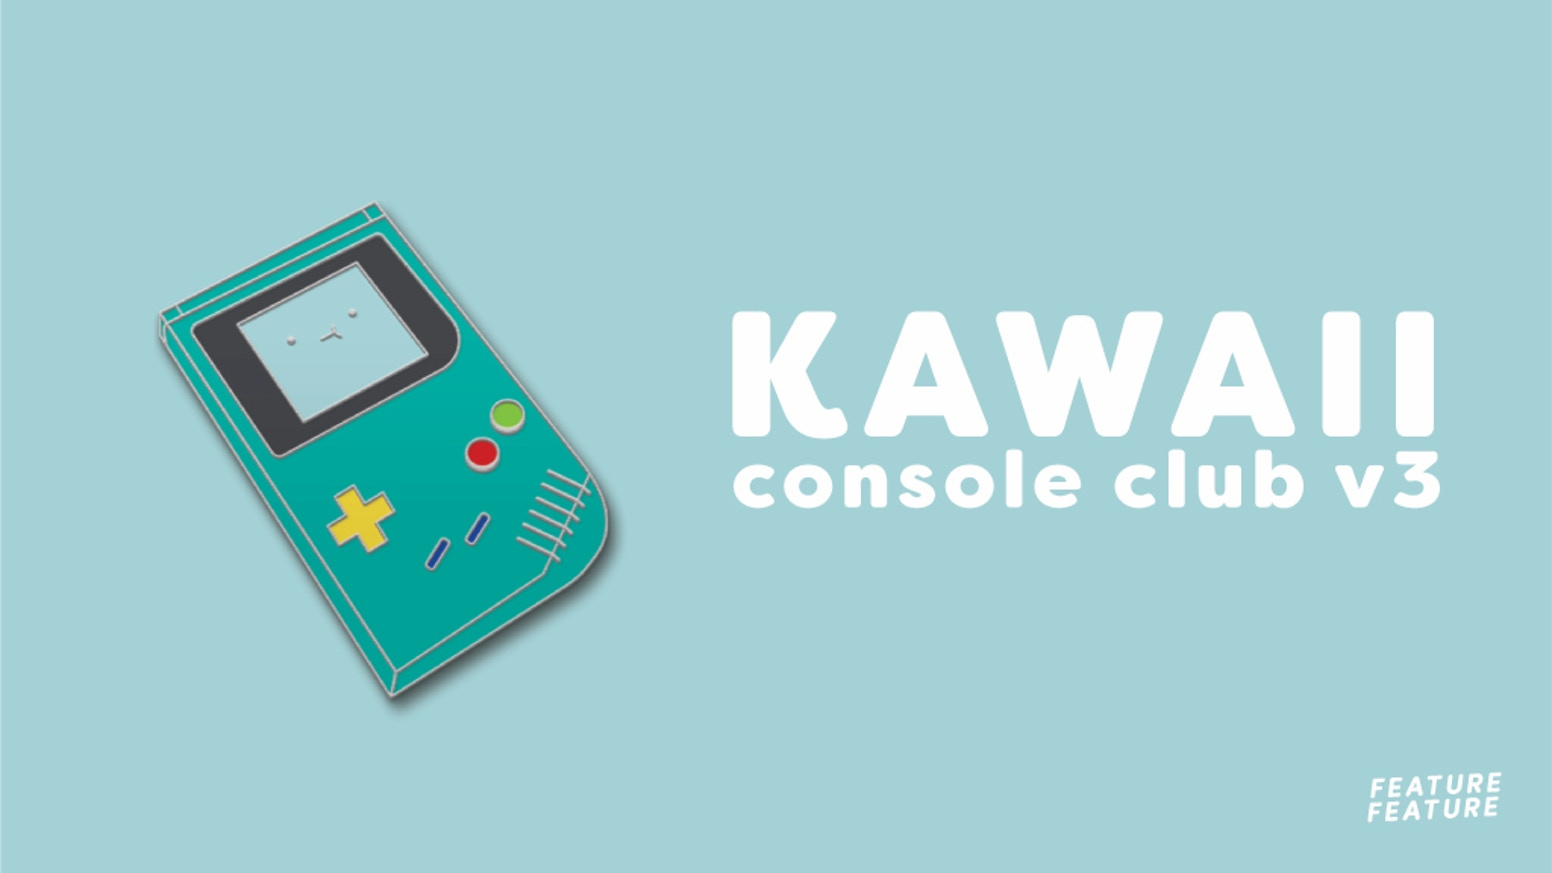 This kickstarter helped fund the Kawaii Console Club v3 Hard Enamel Pins by Dbl Feature! Thanks to everyone who backed this Kickstarter! We love you!